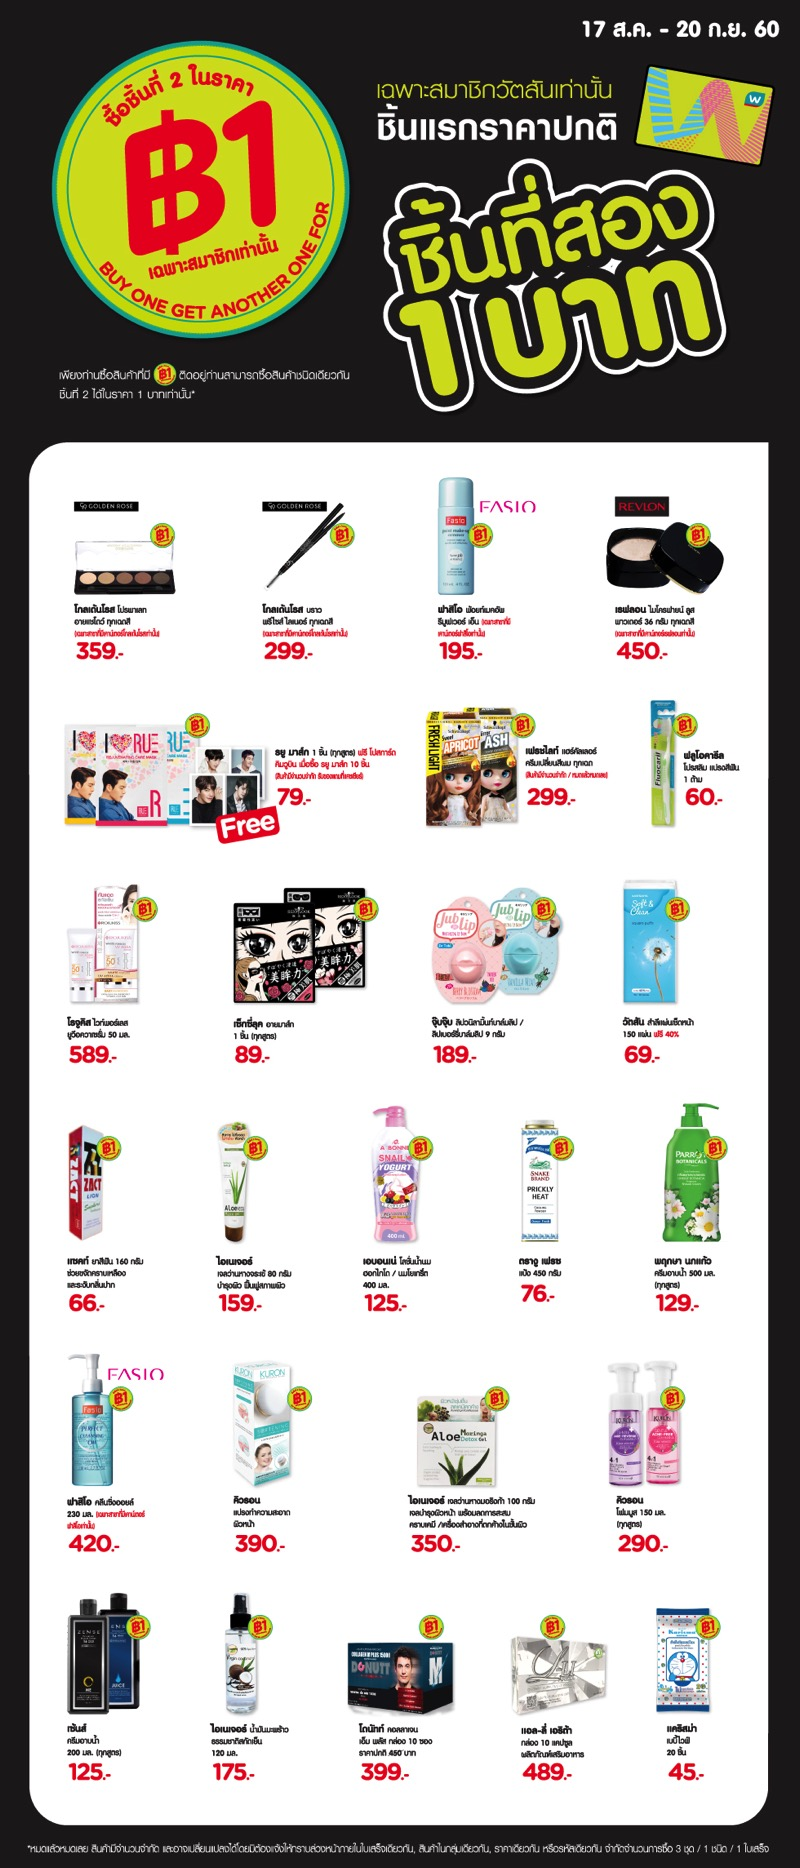 Promotion Watsons 1 Baht [Aug.-Sep.2017] FULL2